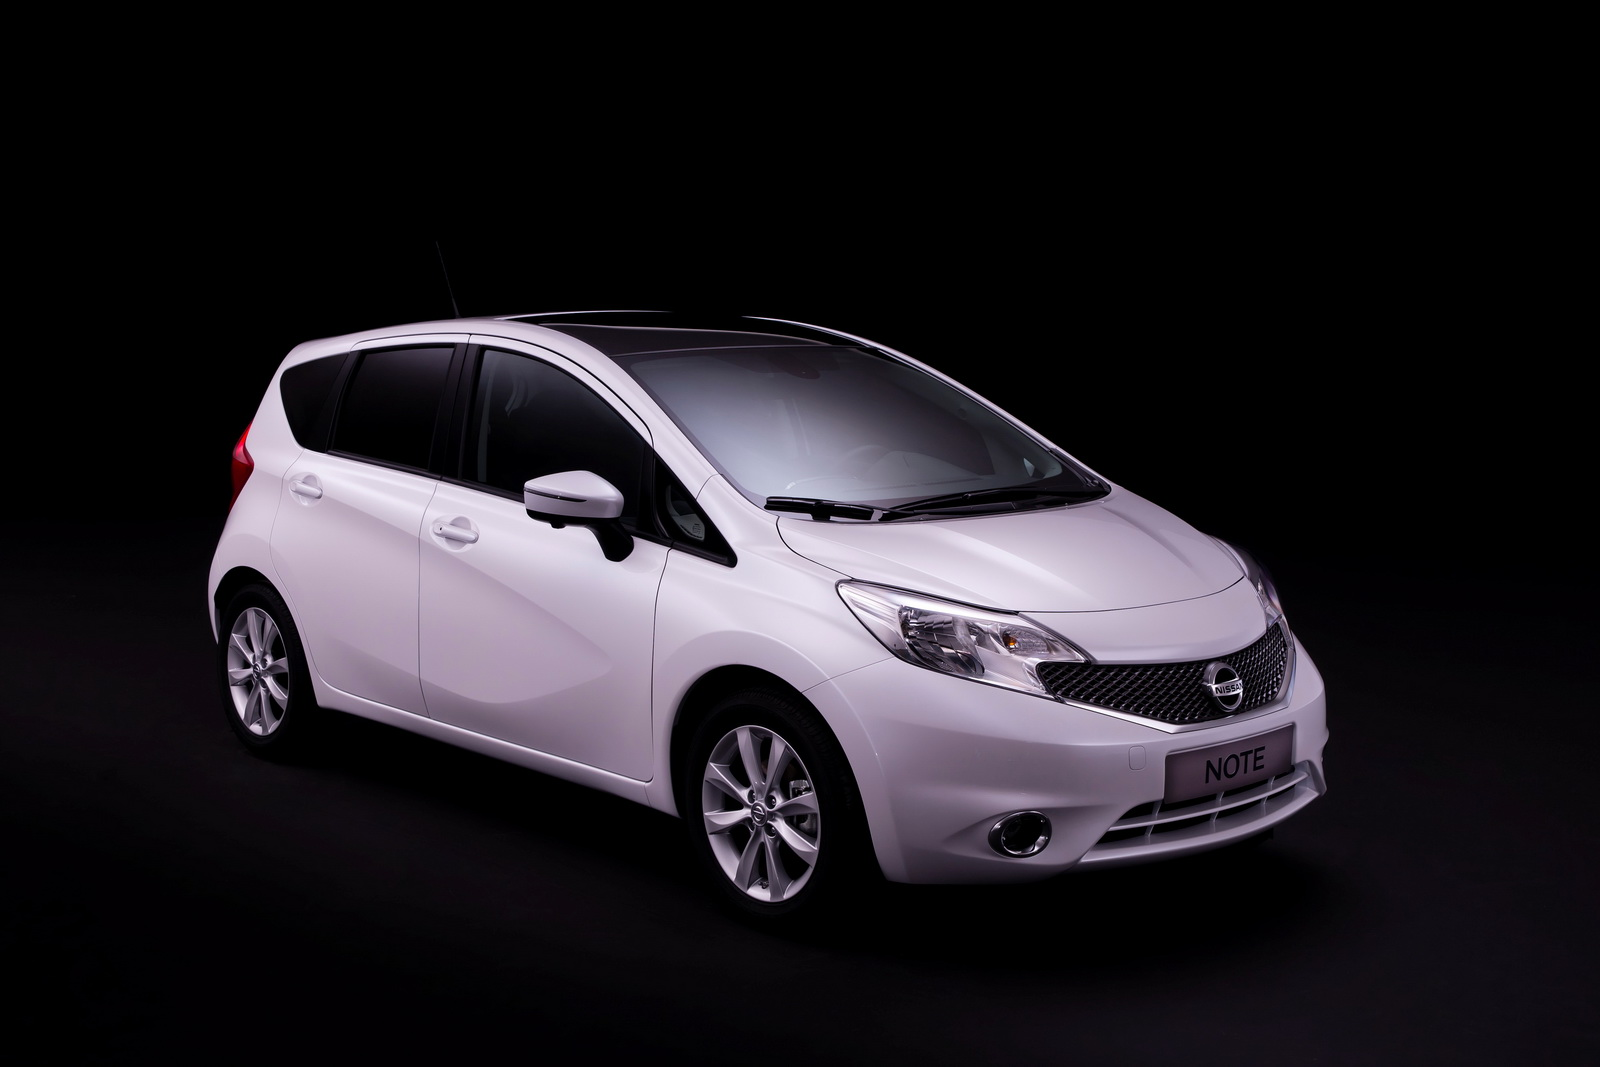 nissan revolutionises small car technology with new nissan note. Black Bedroom Furniture Sets. Home Design Ideas